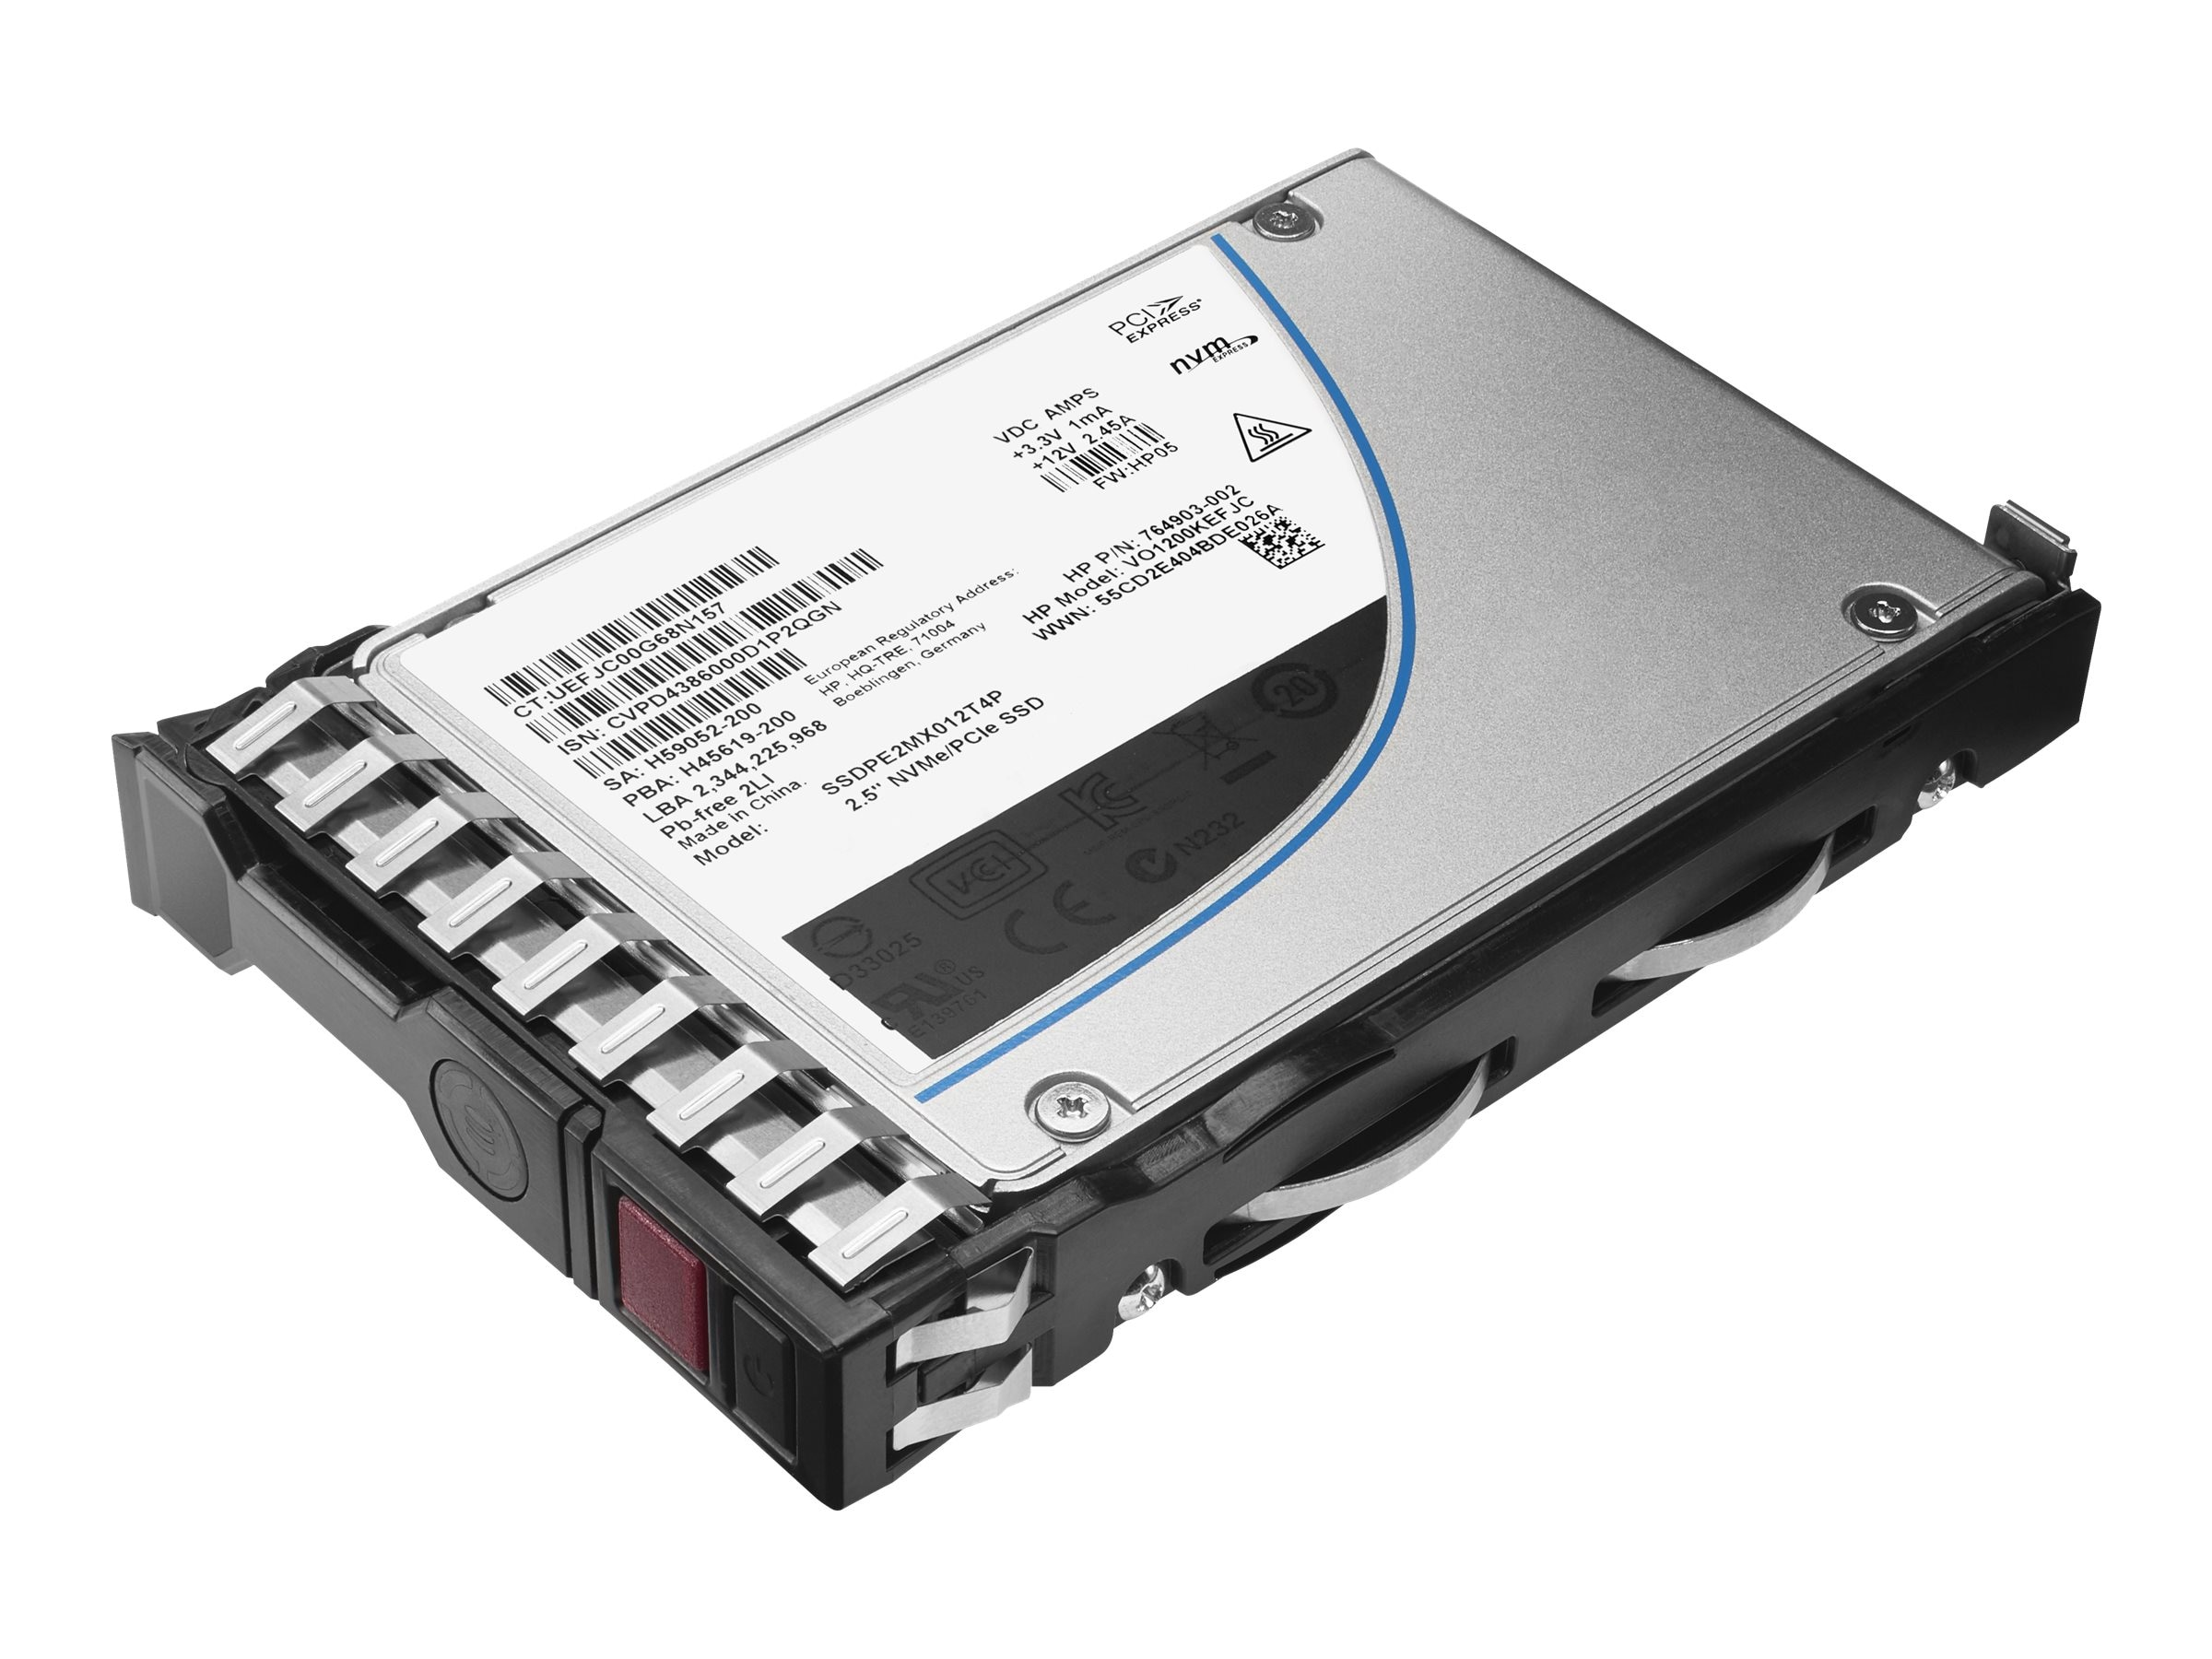 HPE 480GB SATA 6Gb s Value Endurance 3.5 SC Converter Enterprise Value G1 Solid State Drive, 756660-B21, 18360696, Solid State Drives - Internal